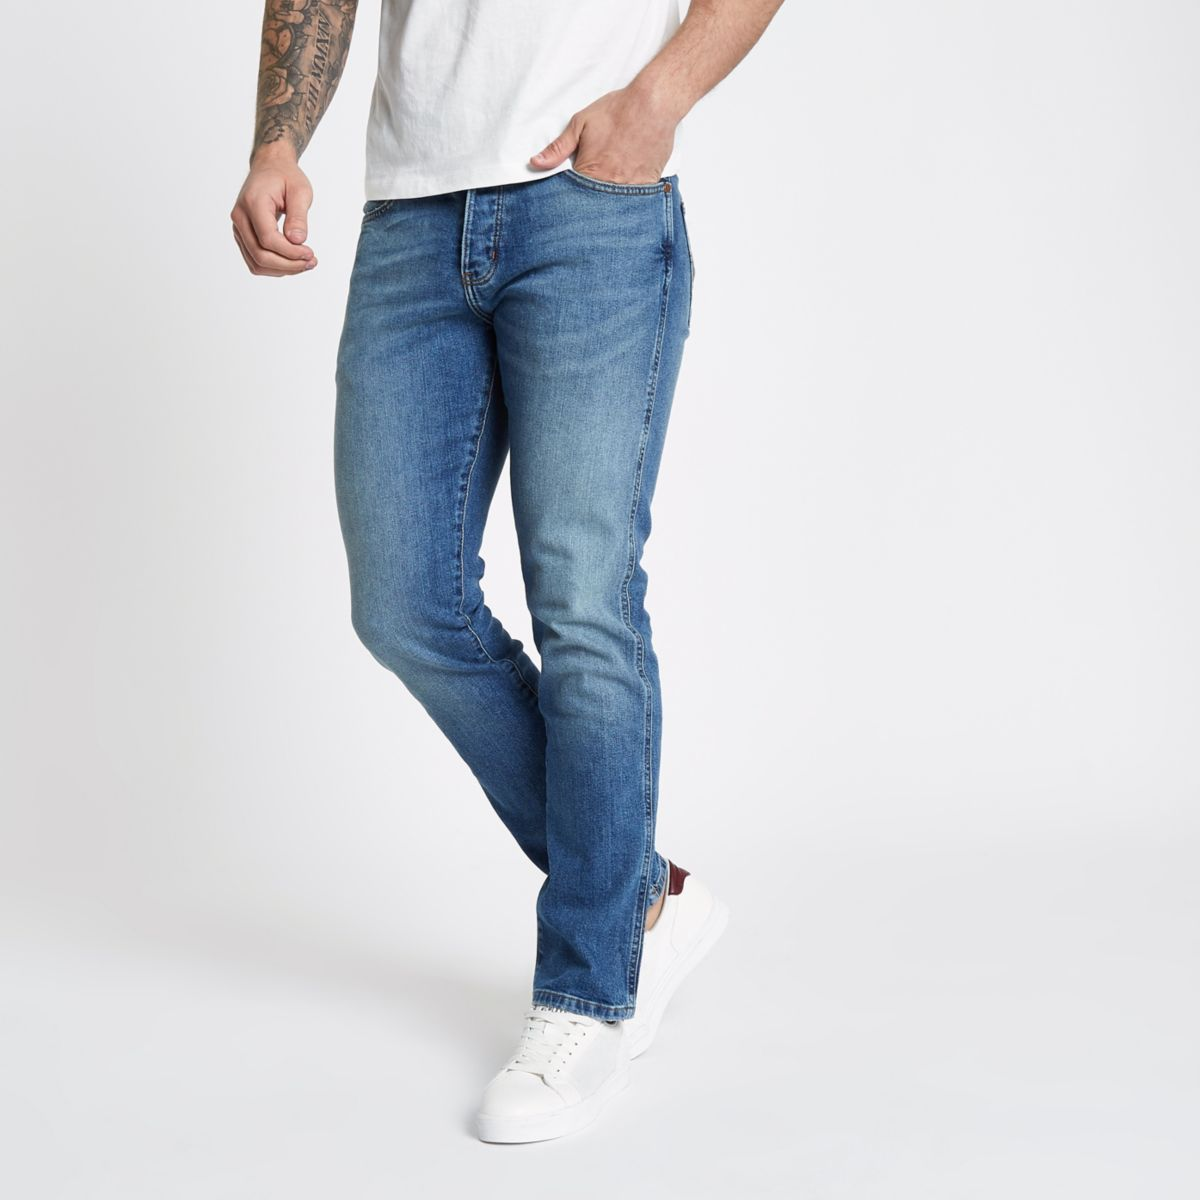 River Island Mens Blue Wrangler Spencer slim straight jeans Wrangler View Online Recommend How Much Online New Arrival Limited Edition Sale Online vhoNUfS